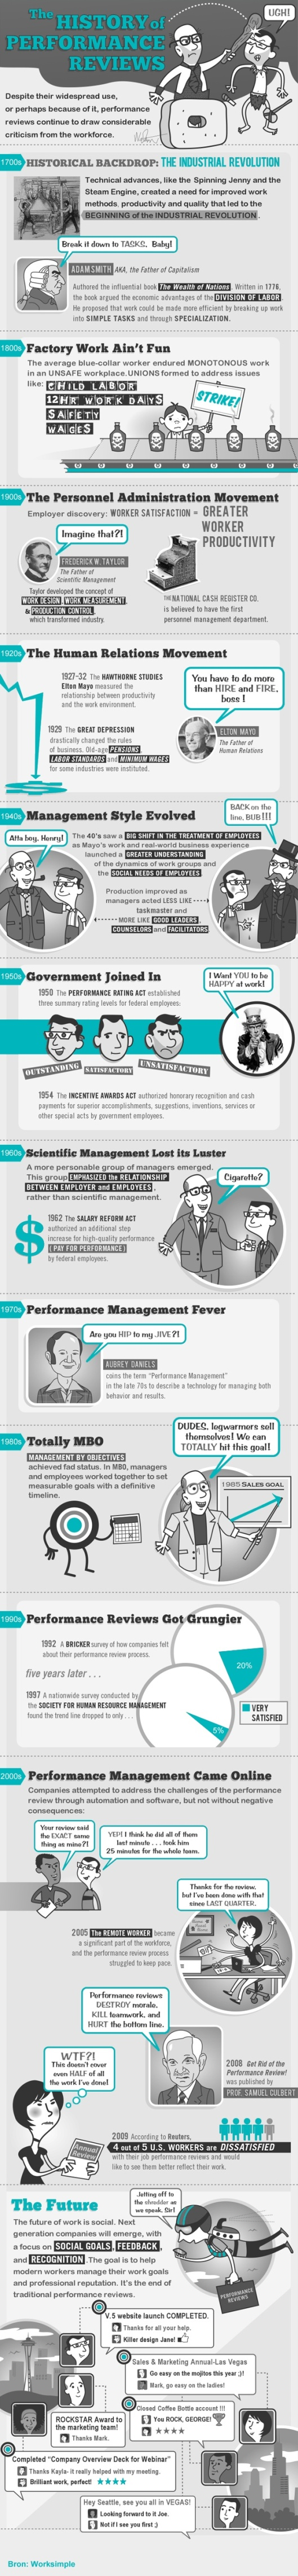 The History of Performance Reviews 10 31 2013 HR